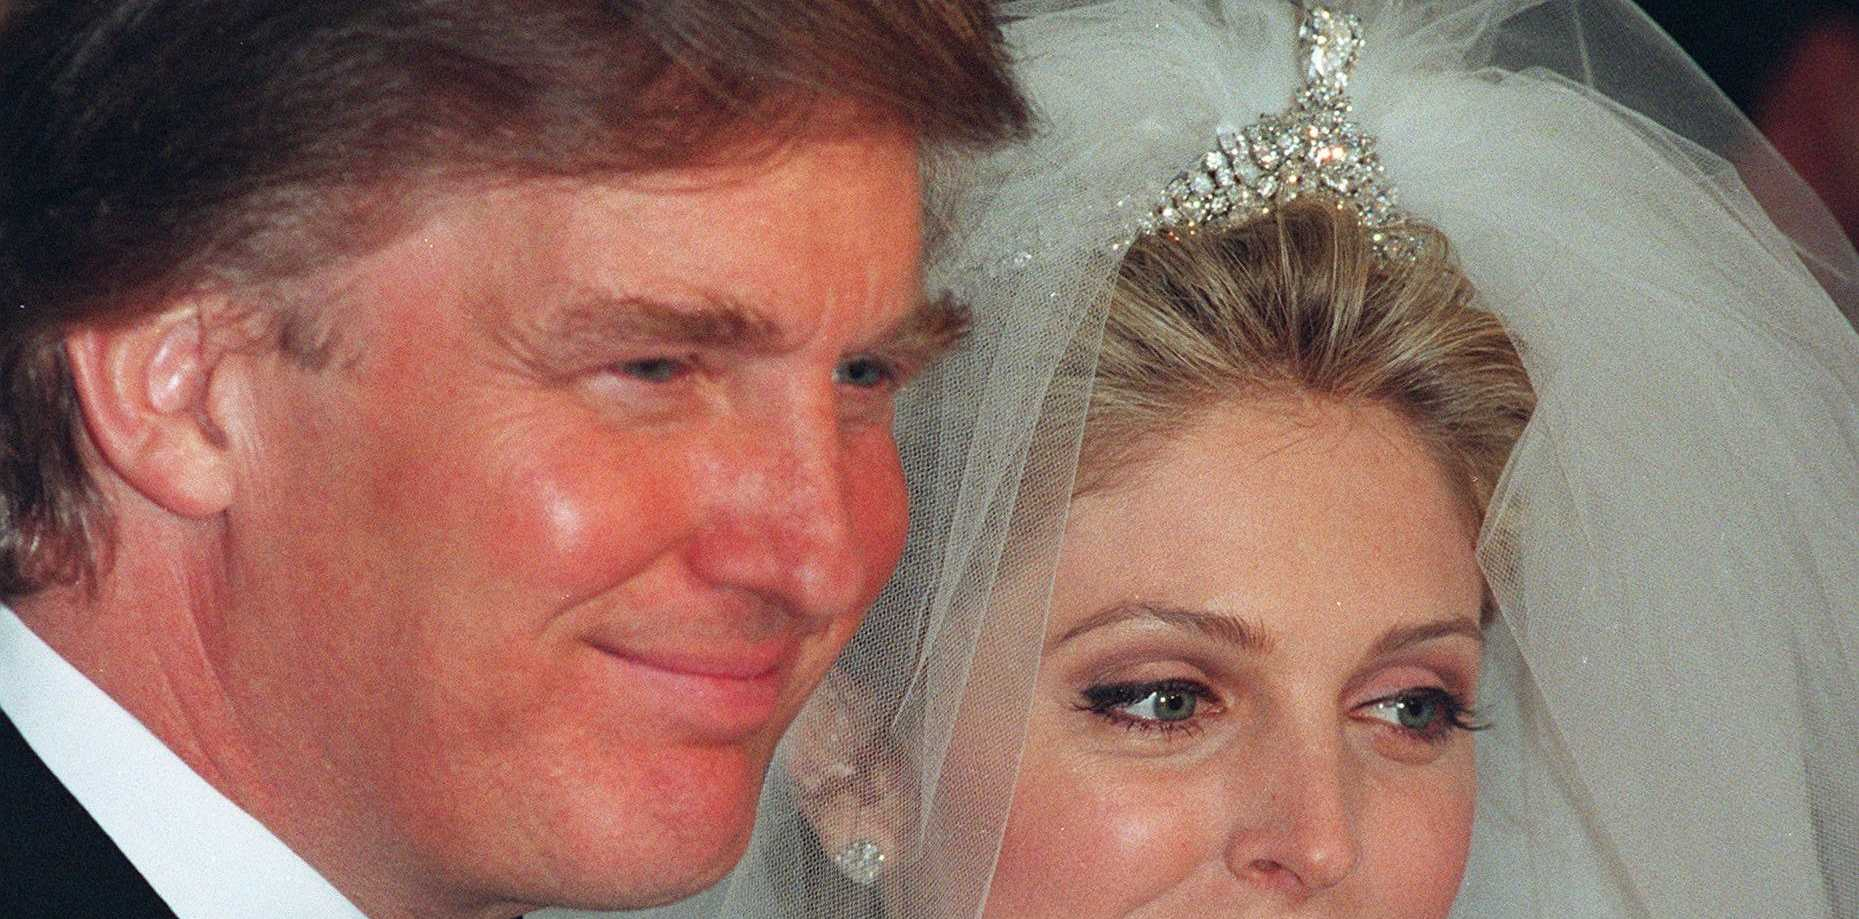 Donald Trump and Marla Maples at their 1997 wedding